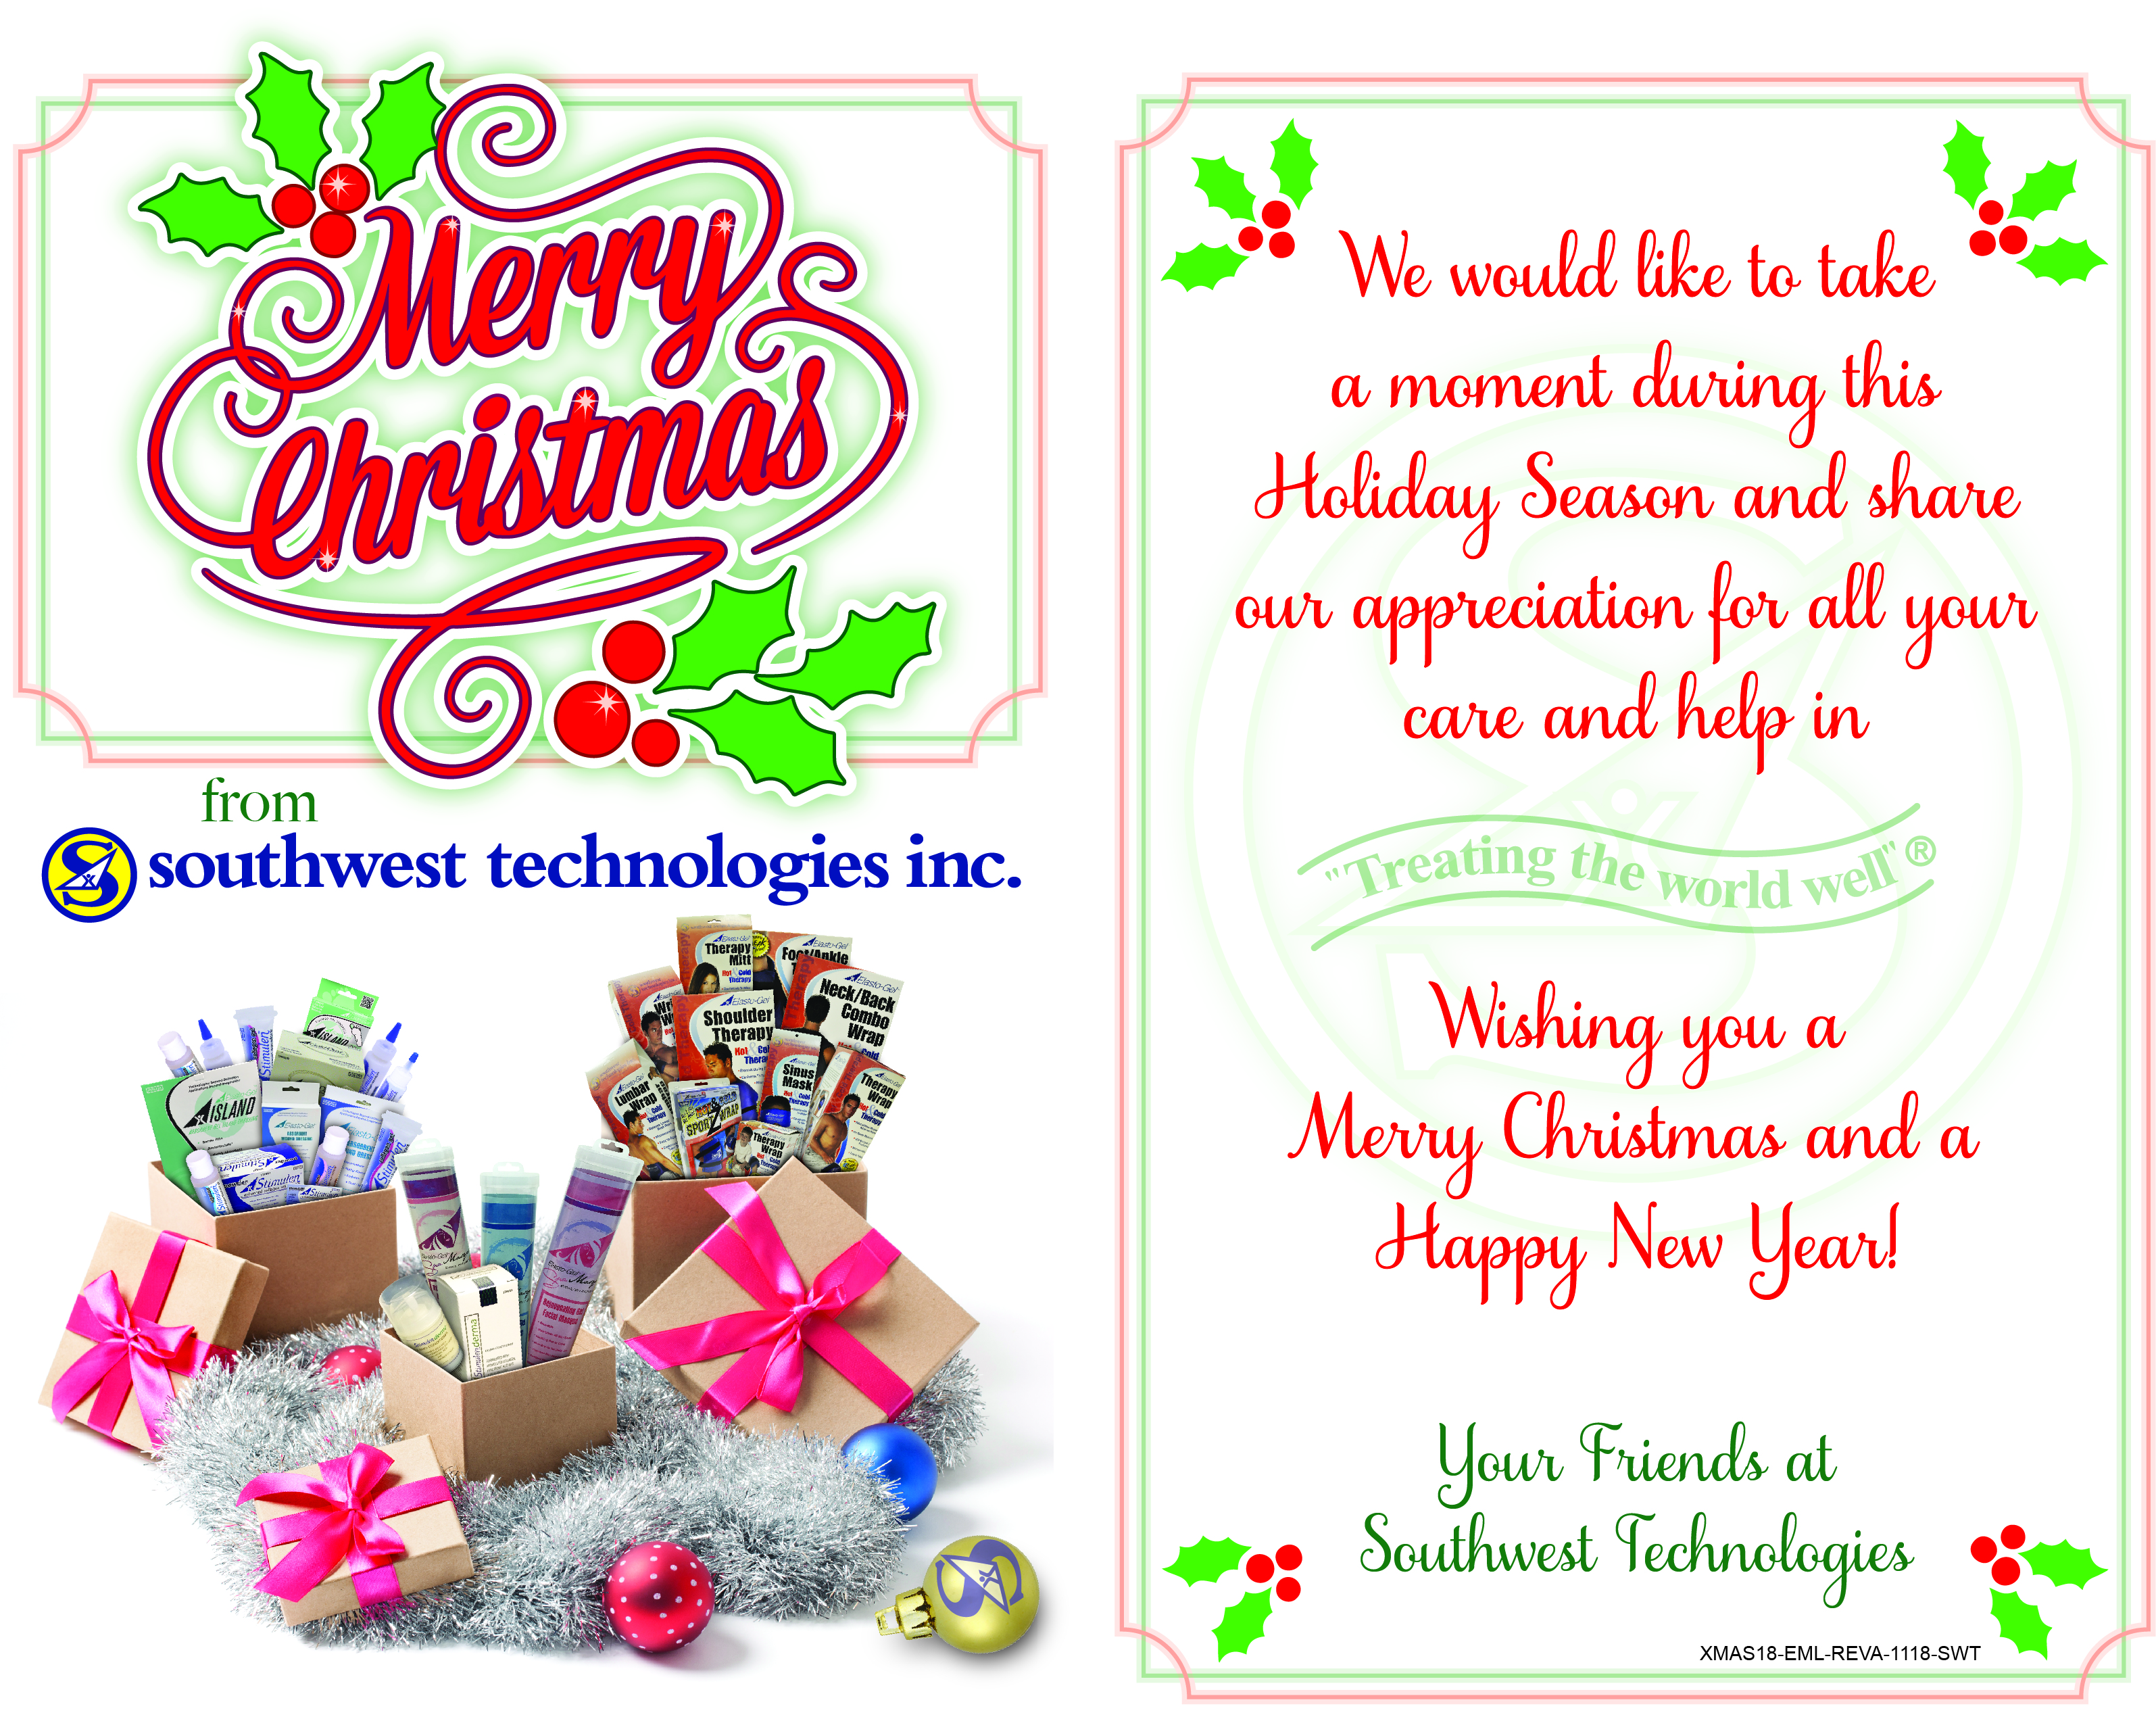 Merry Christmas from Southwest Technologies 2018